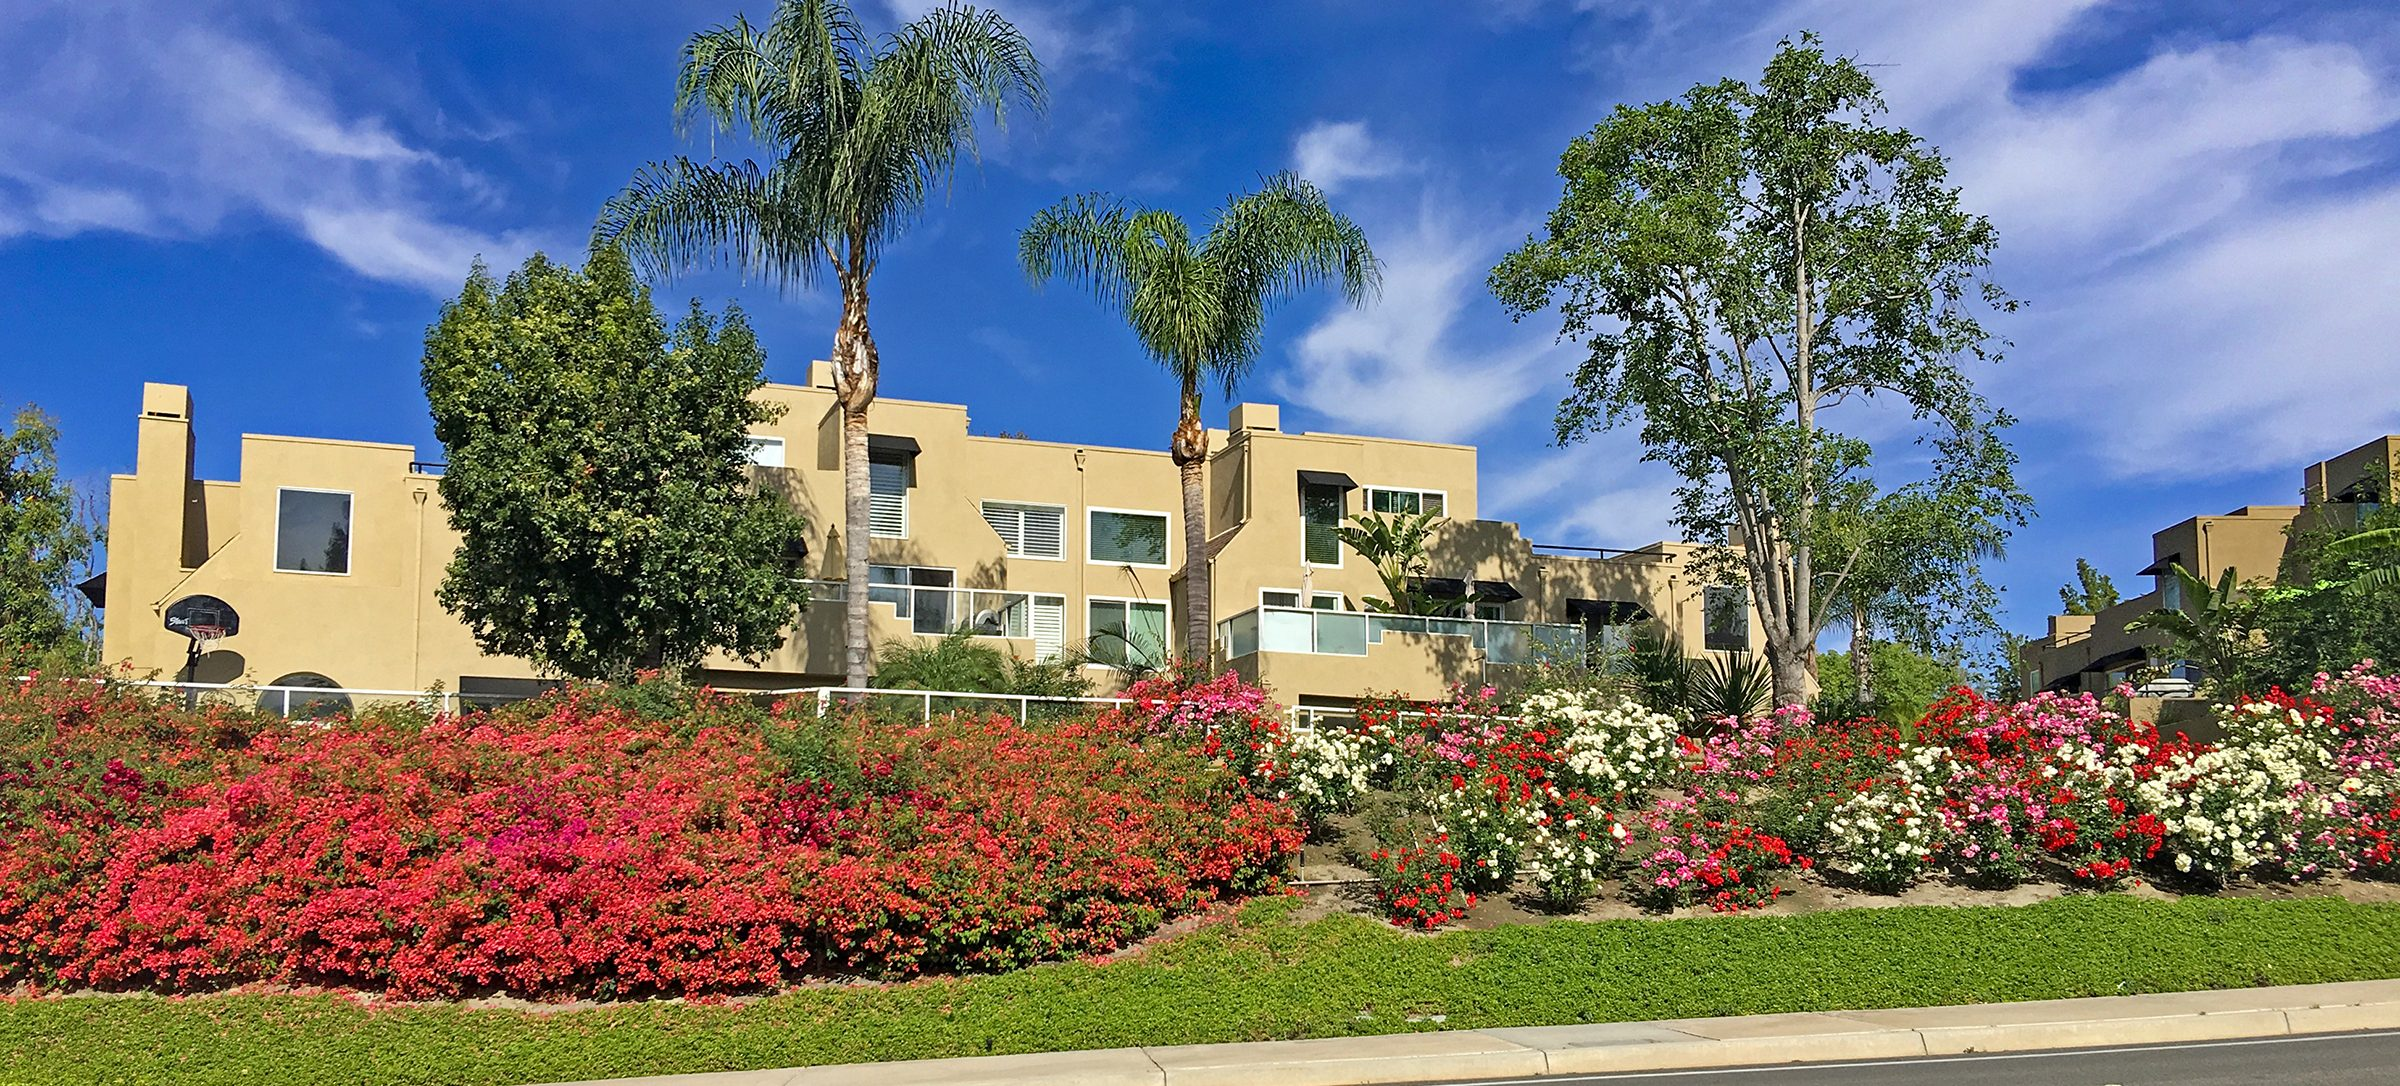 Condos in Mission Viejo for Sale Jackie Gibbins Just Listed Condos in Mission Viejo